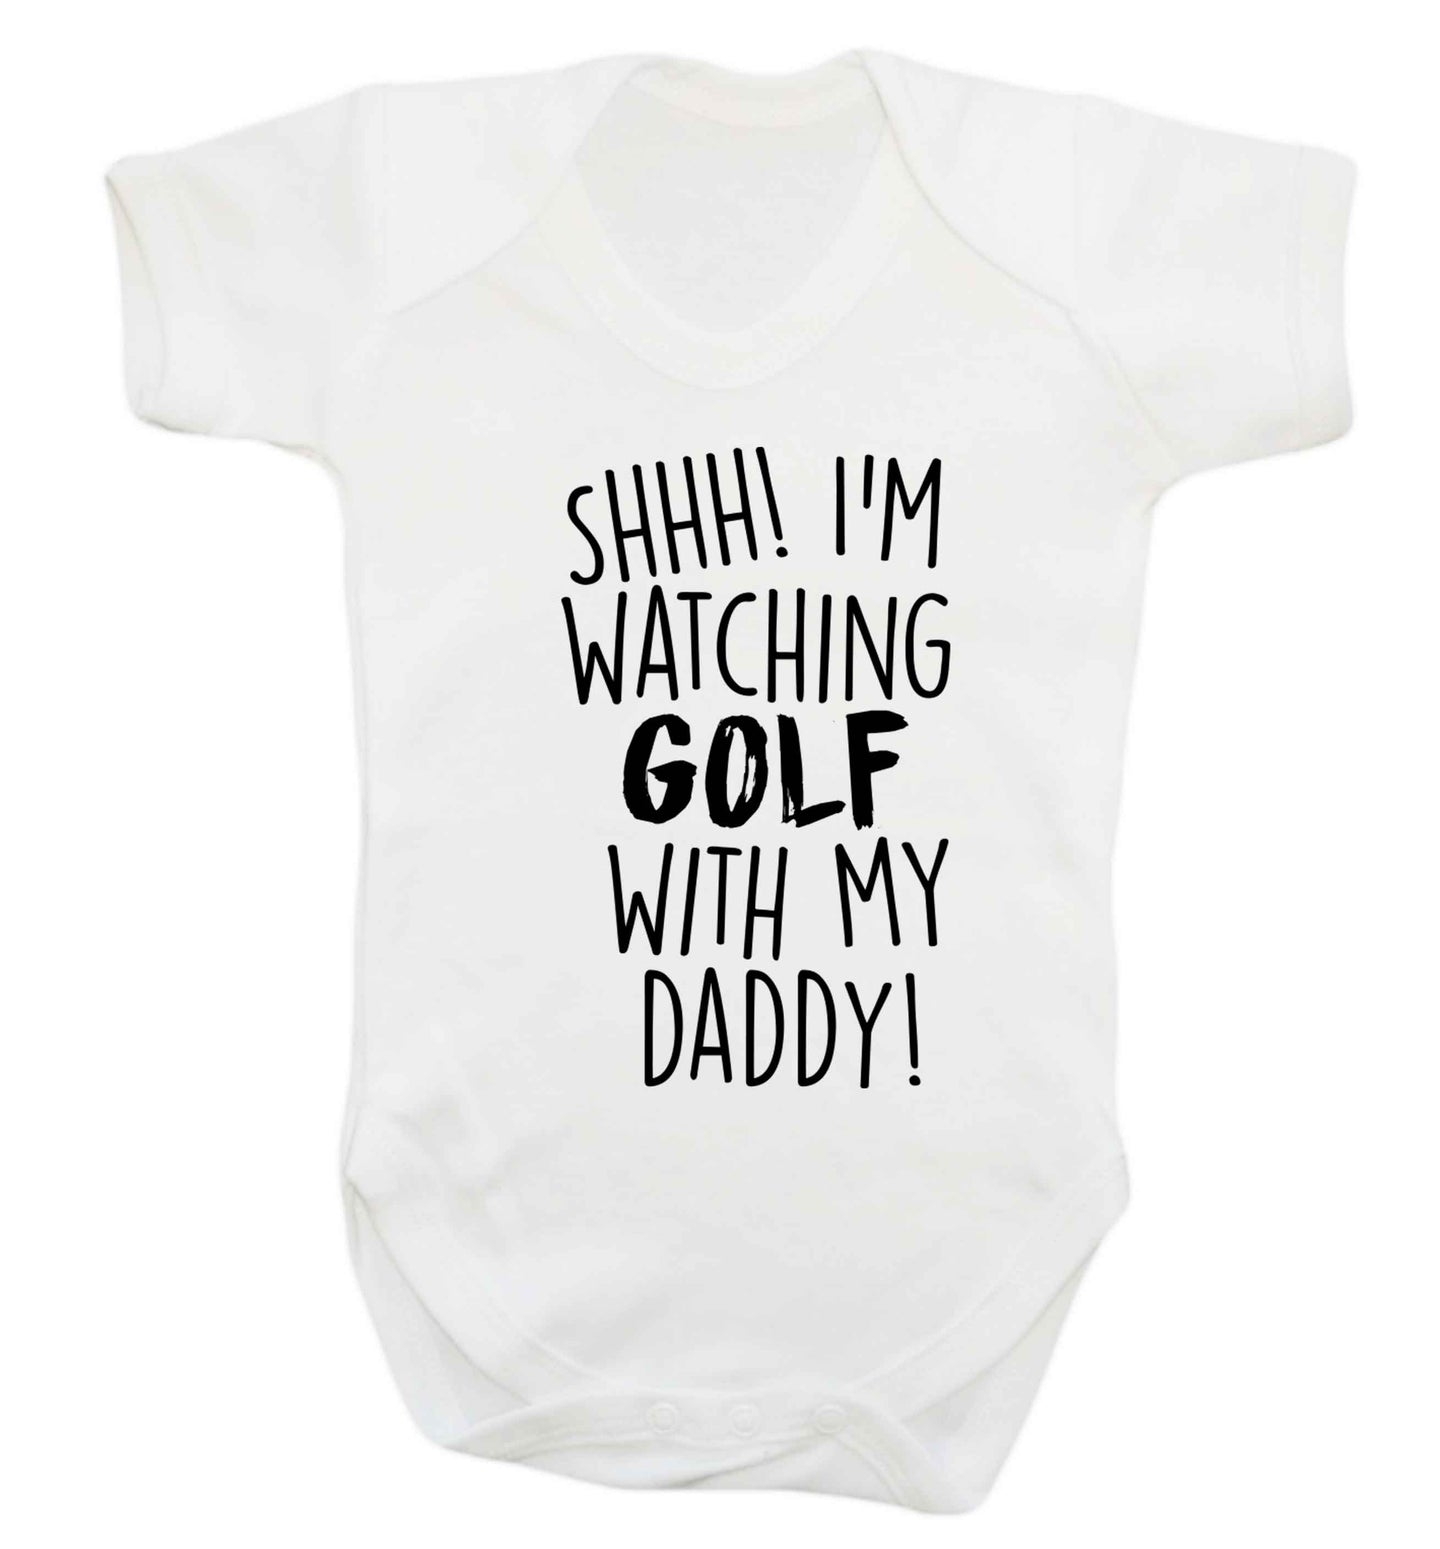 Shh I'm watching golf with my daddy Baby Vest white 18-24 months